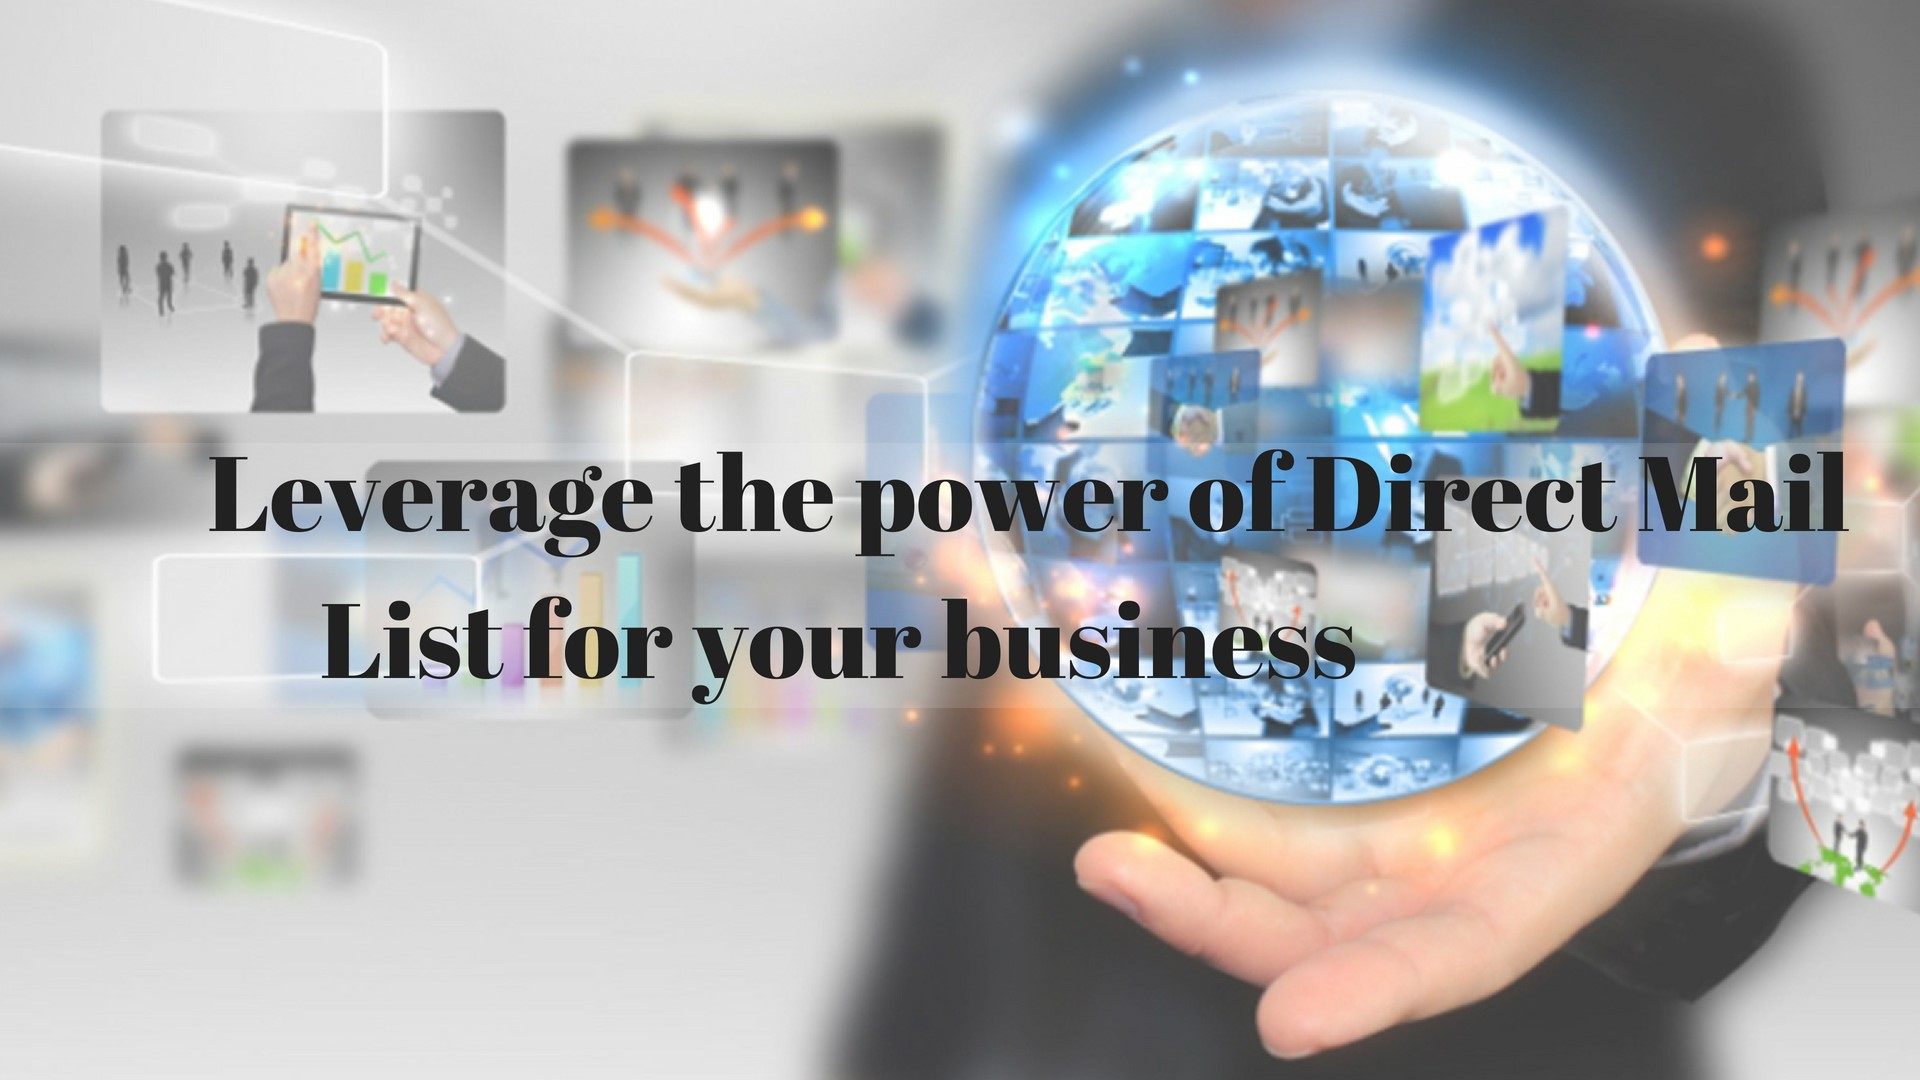 Leverage the power of Direct Mail List